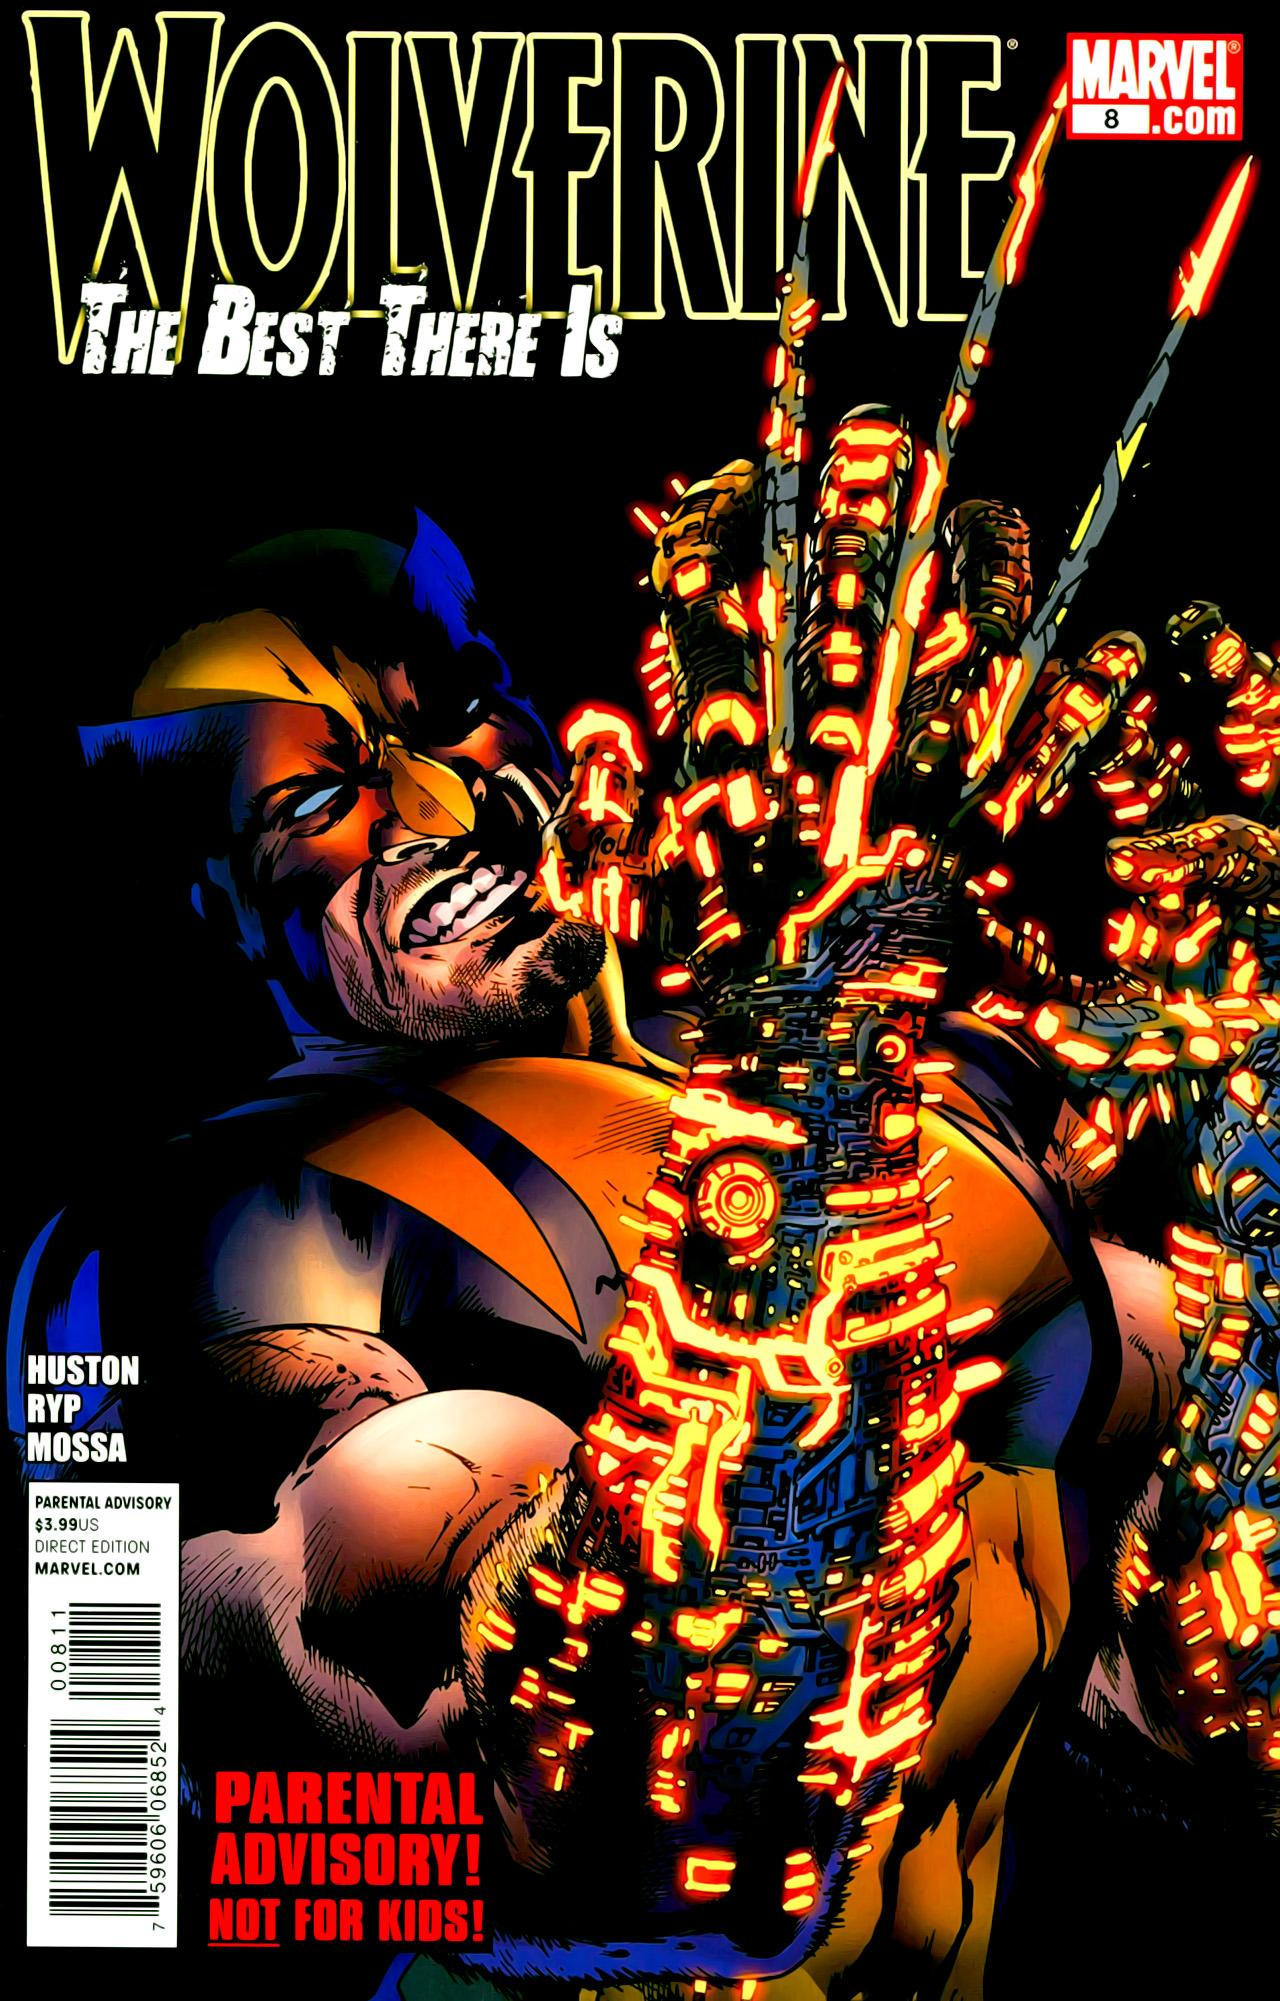 Wolverine - The Best There Is #8 (2011) free download